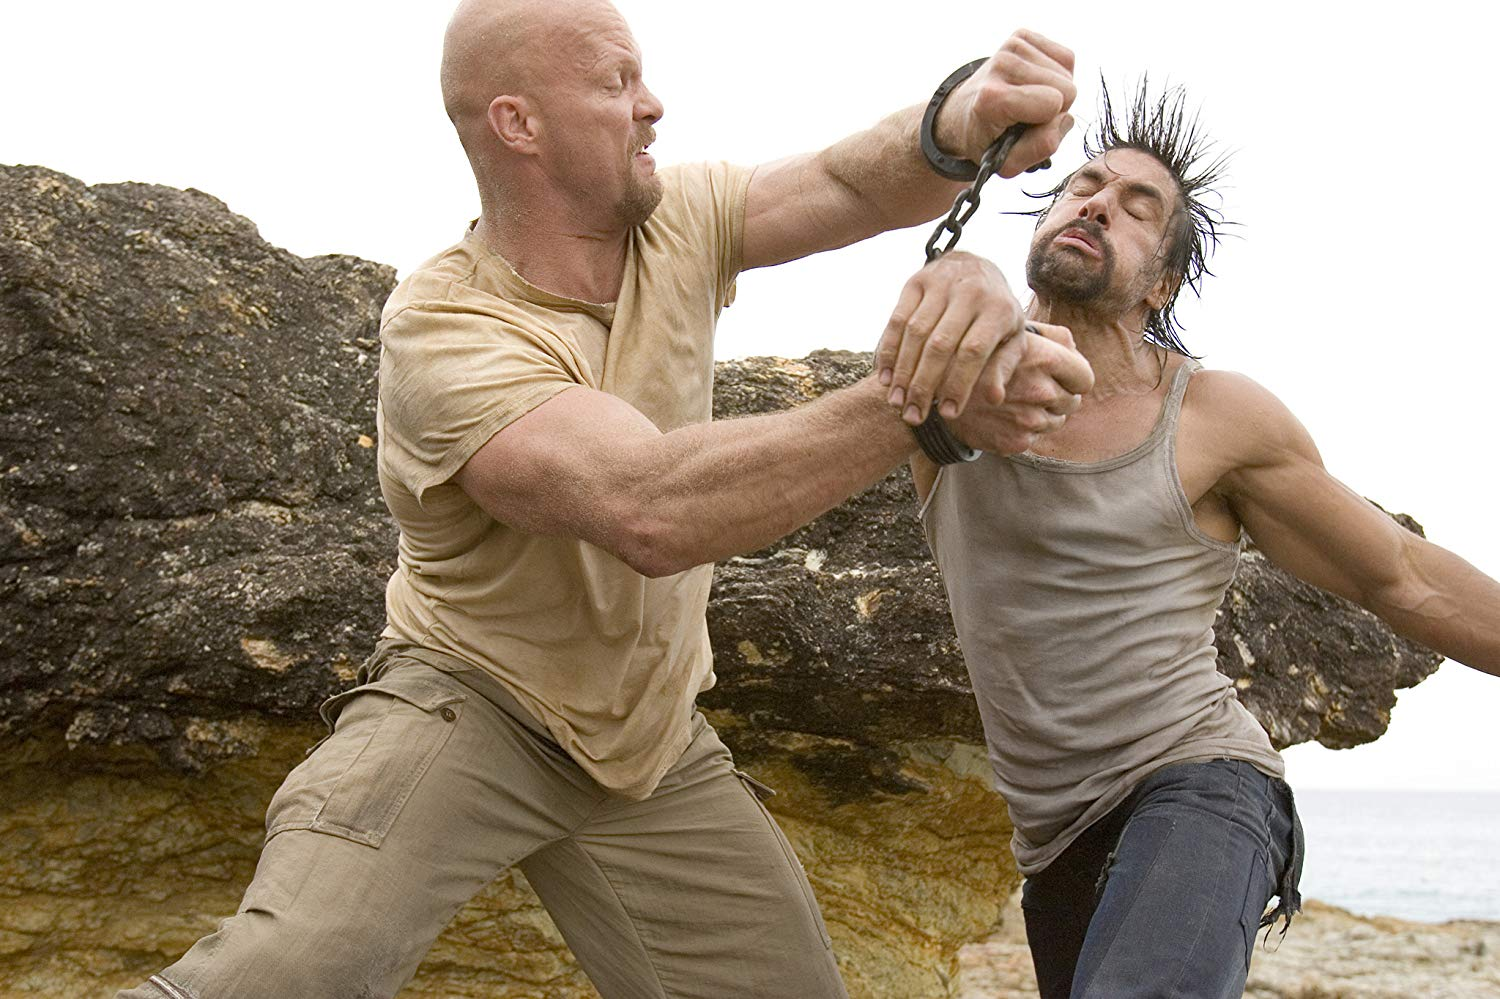 Barehands survivalism - (l to r) Steve Austin takes on Manu Bennett in The Condemned (2007)